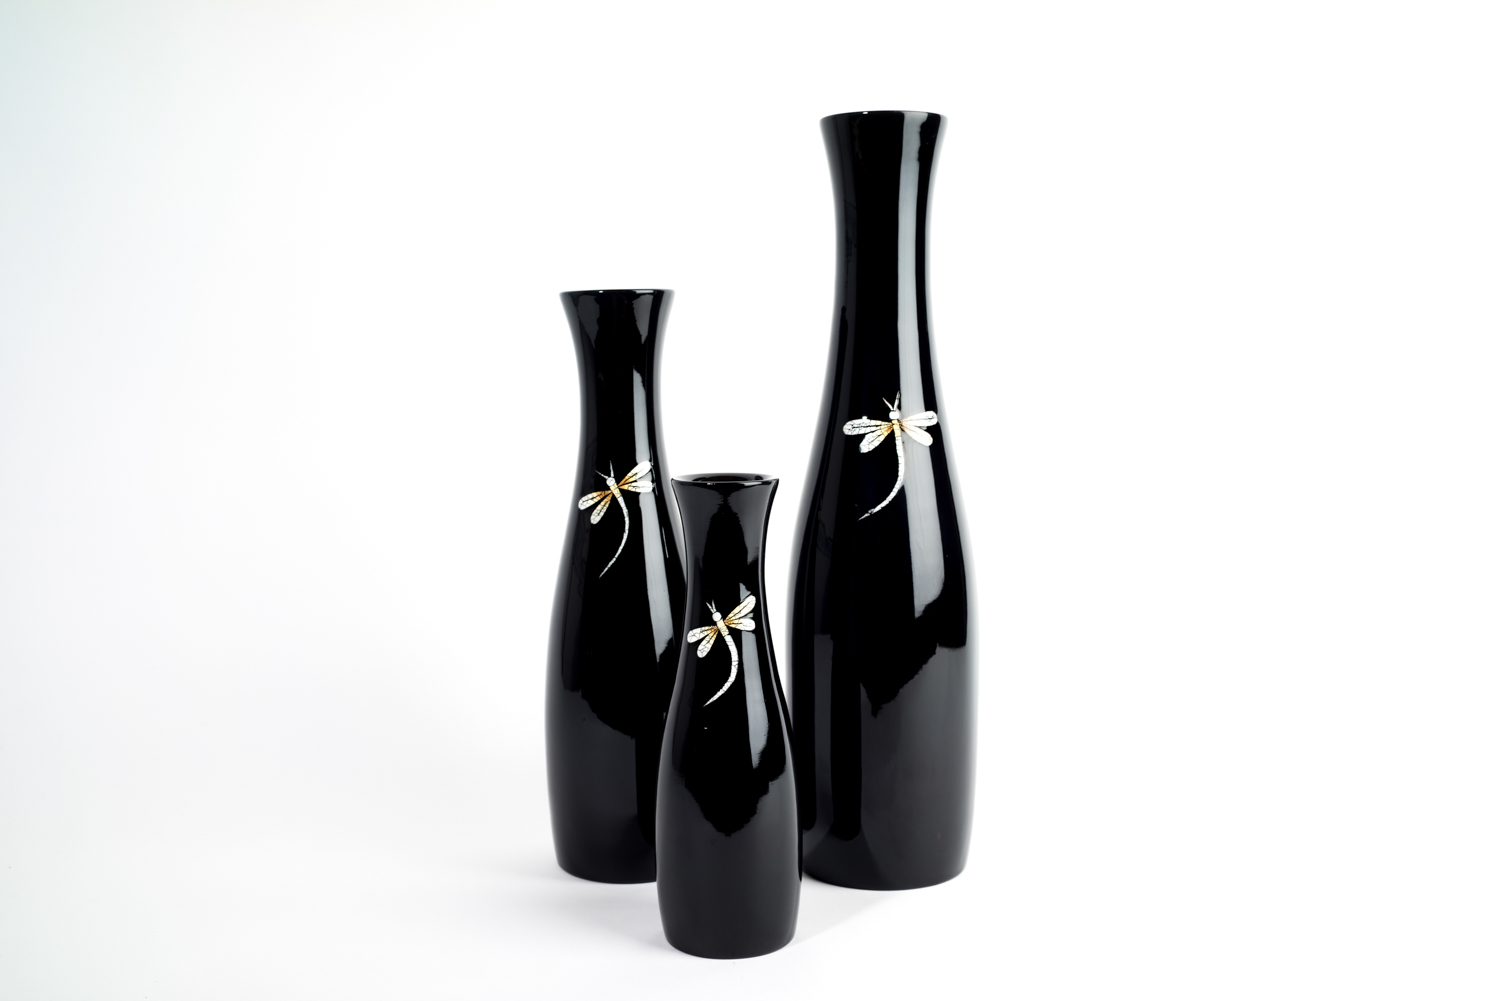 Dragonfly wooden lacquer vases - available in 3 sizes. Smallest vase is to the front of the image.